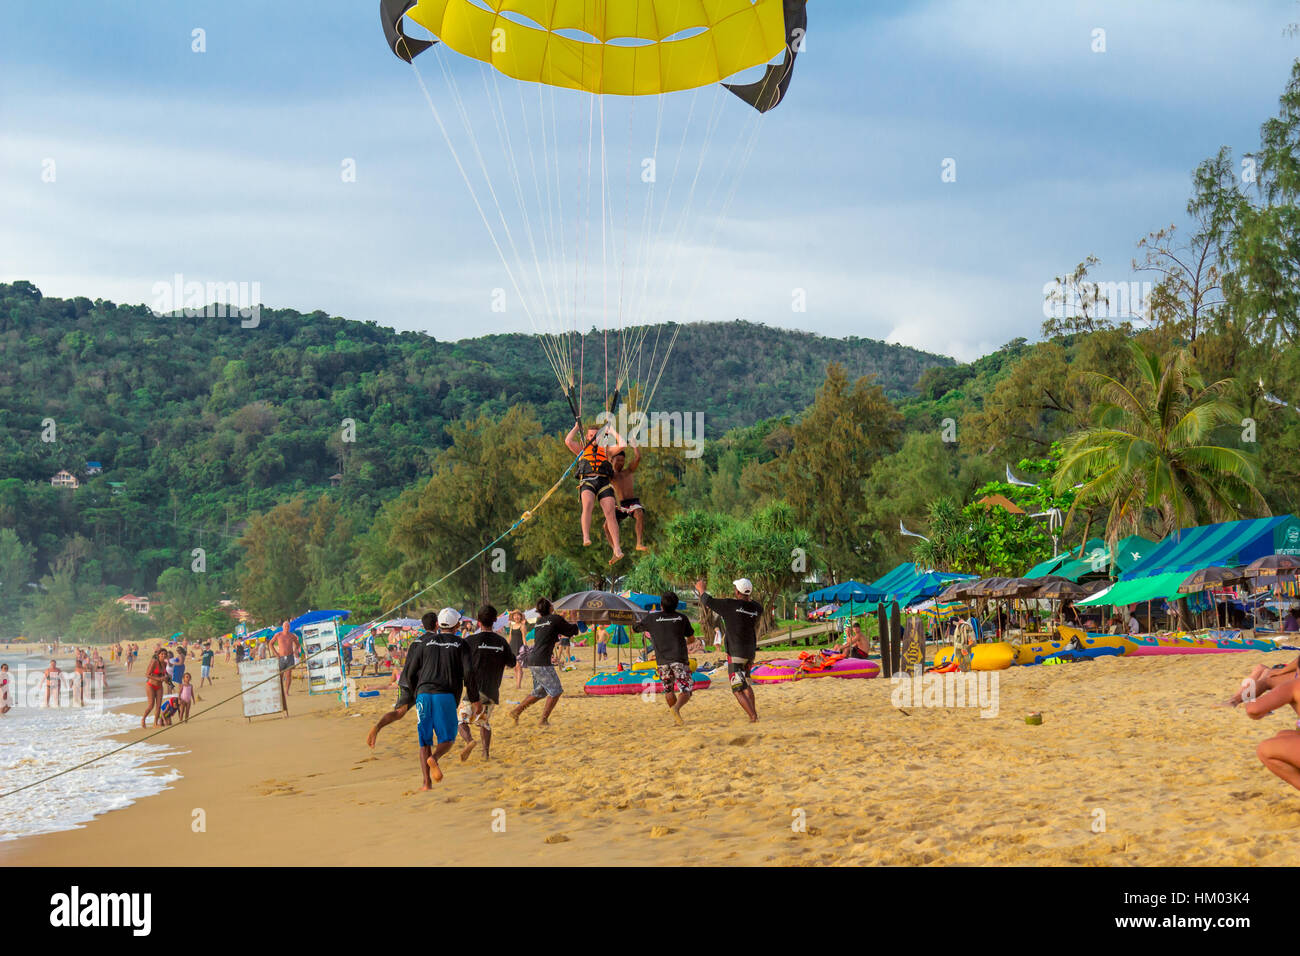 Parachutists landing on the beach insures assistants crowd in black Stock Photo